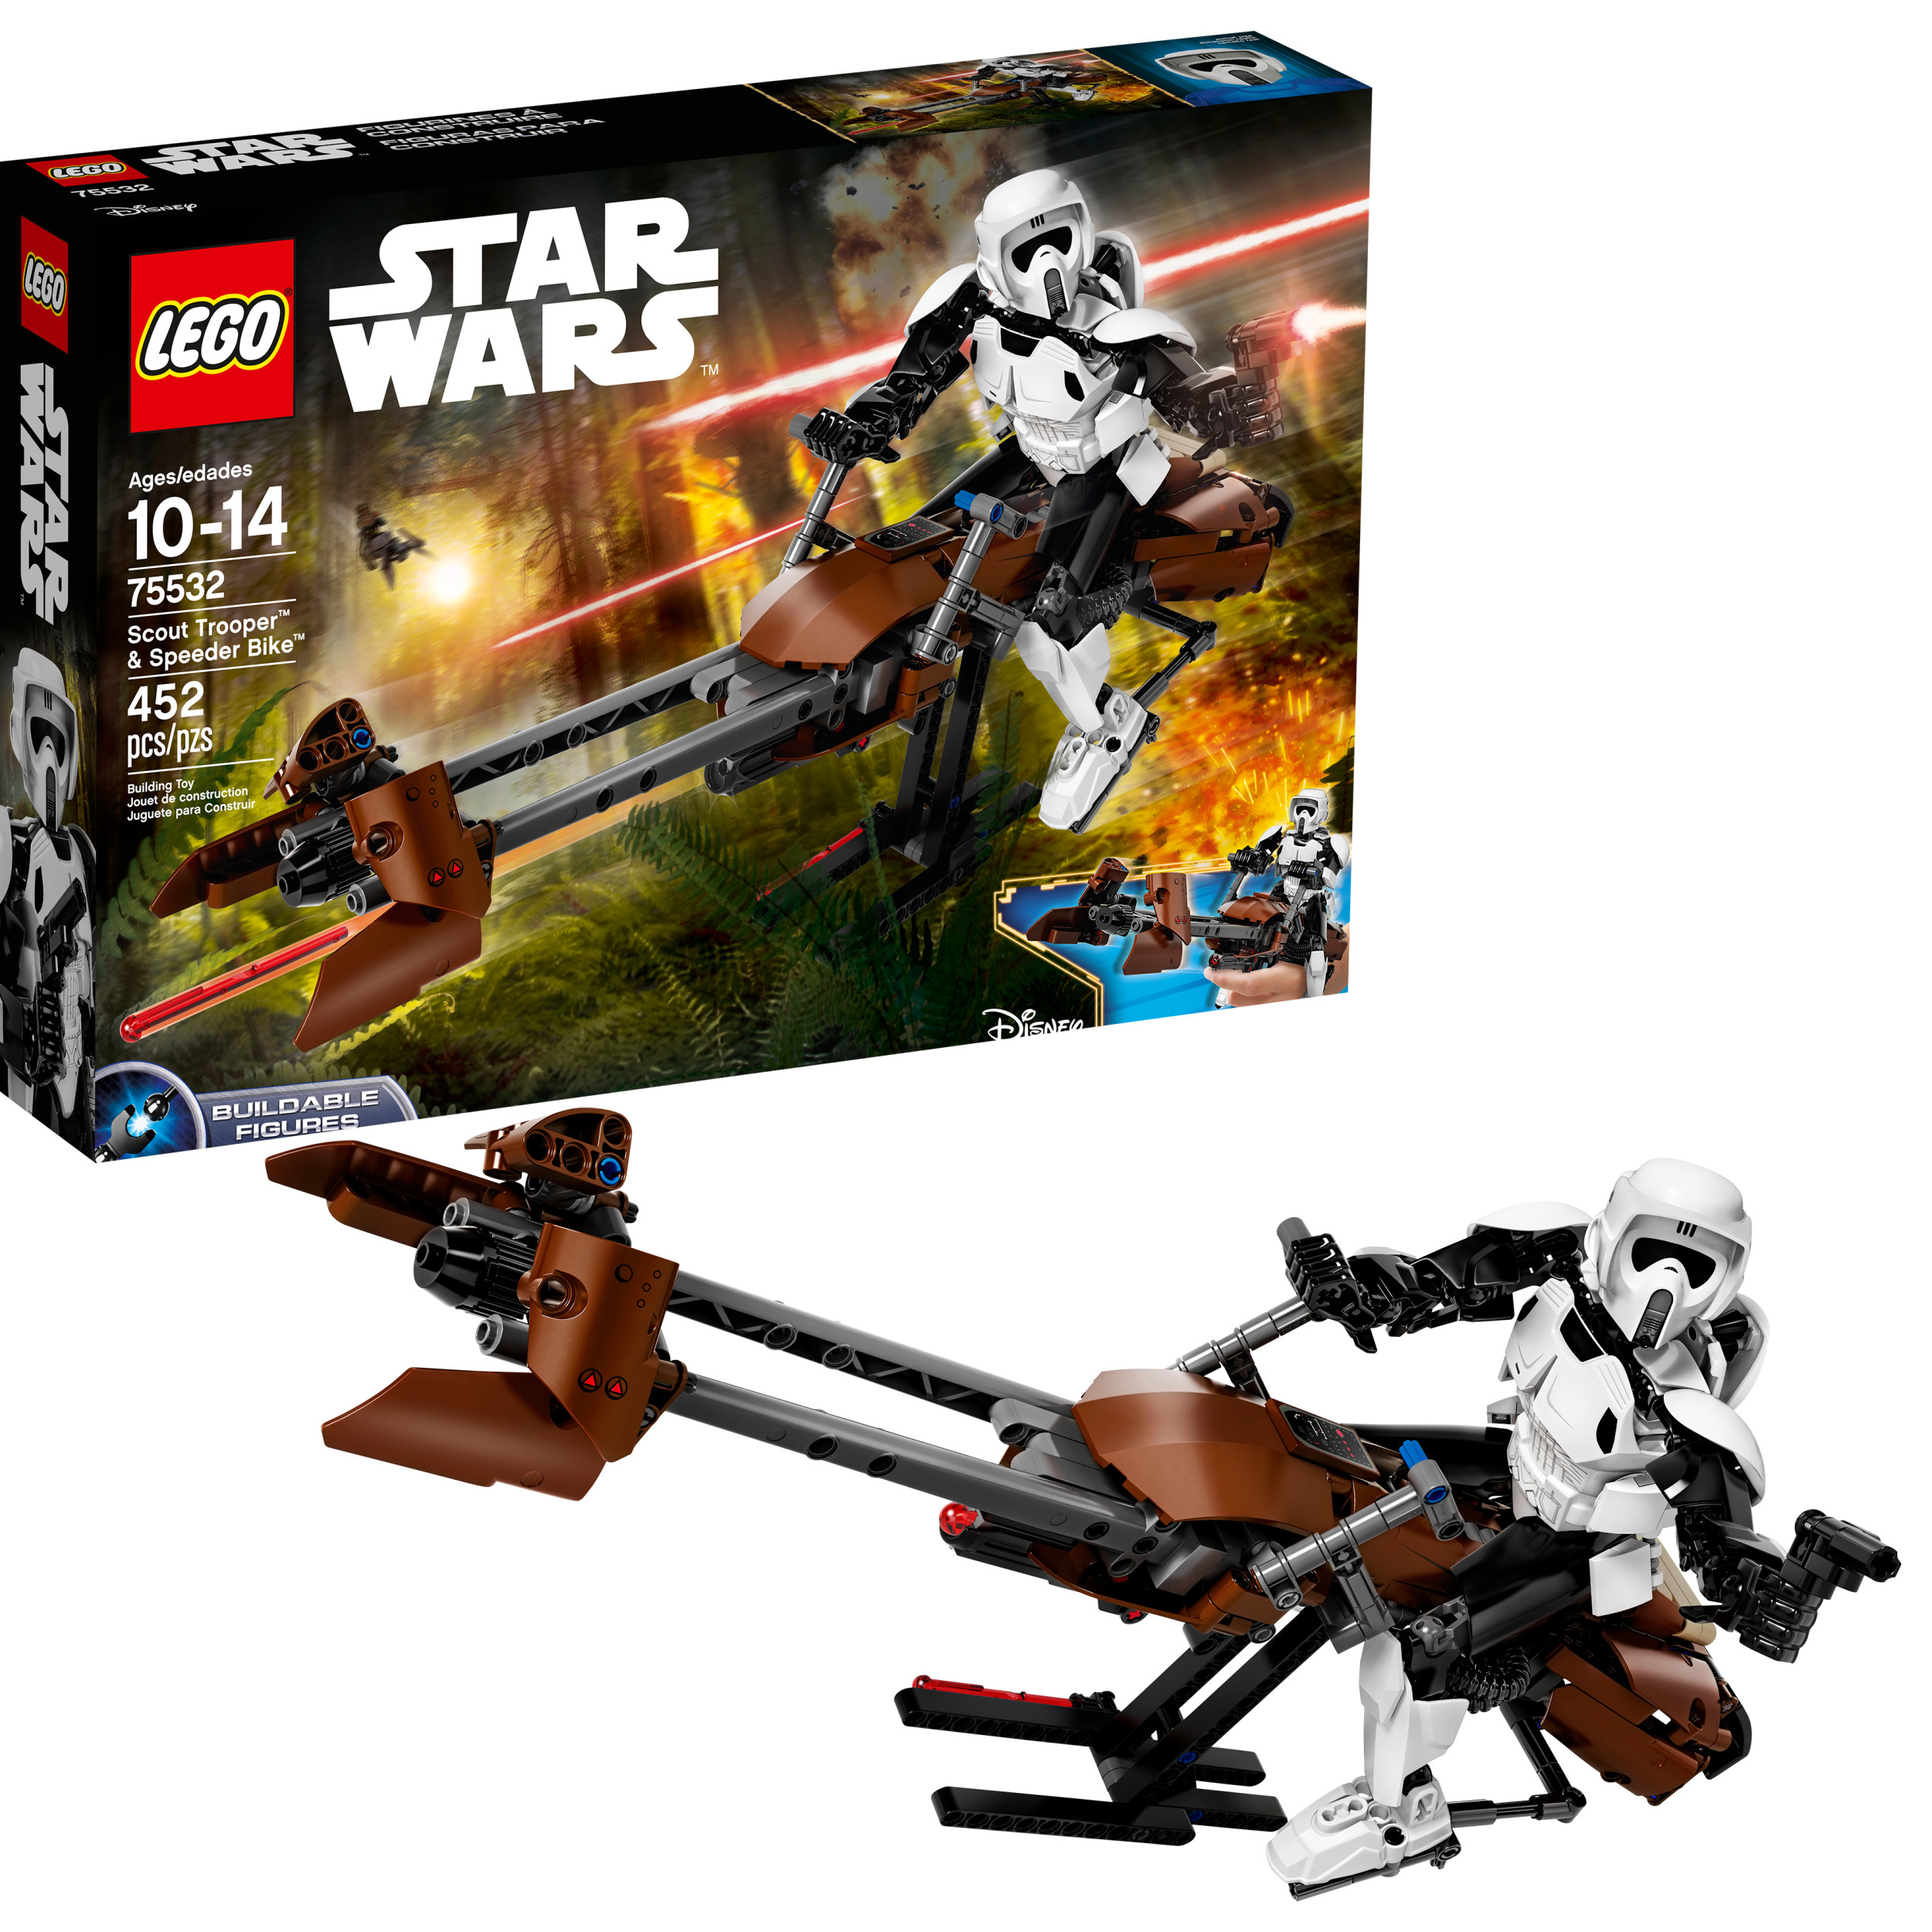 LEGO Star Wars Scout TM Trooper & Speeder Bike 75532